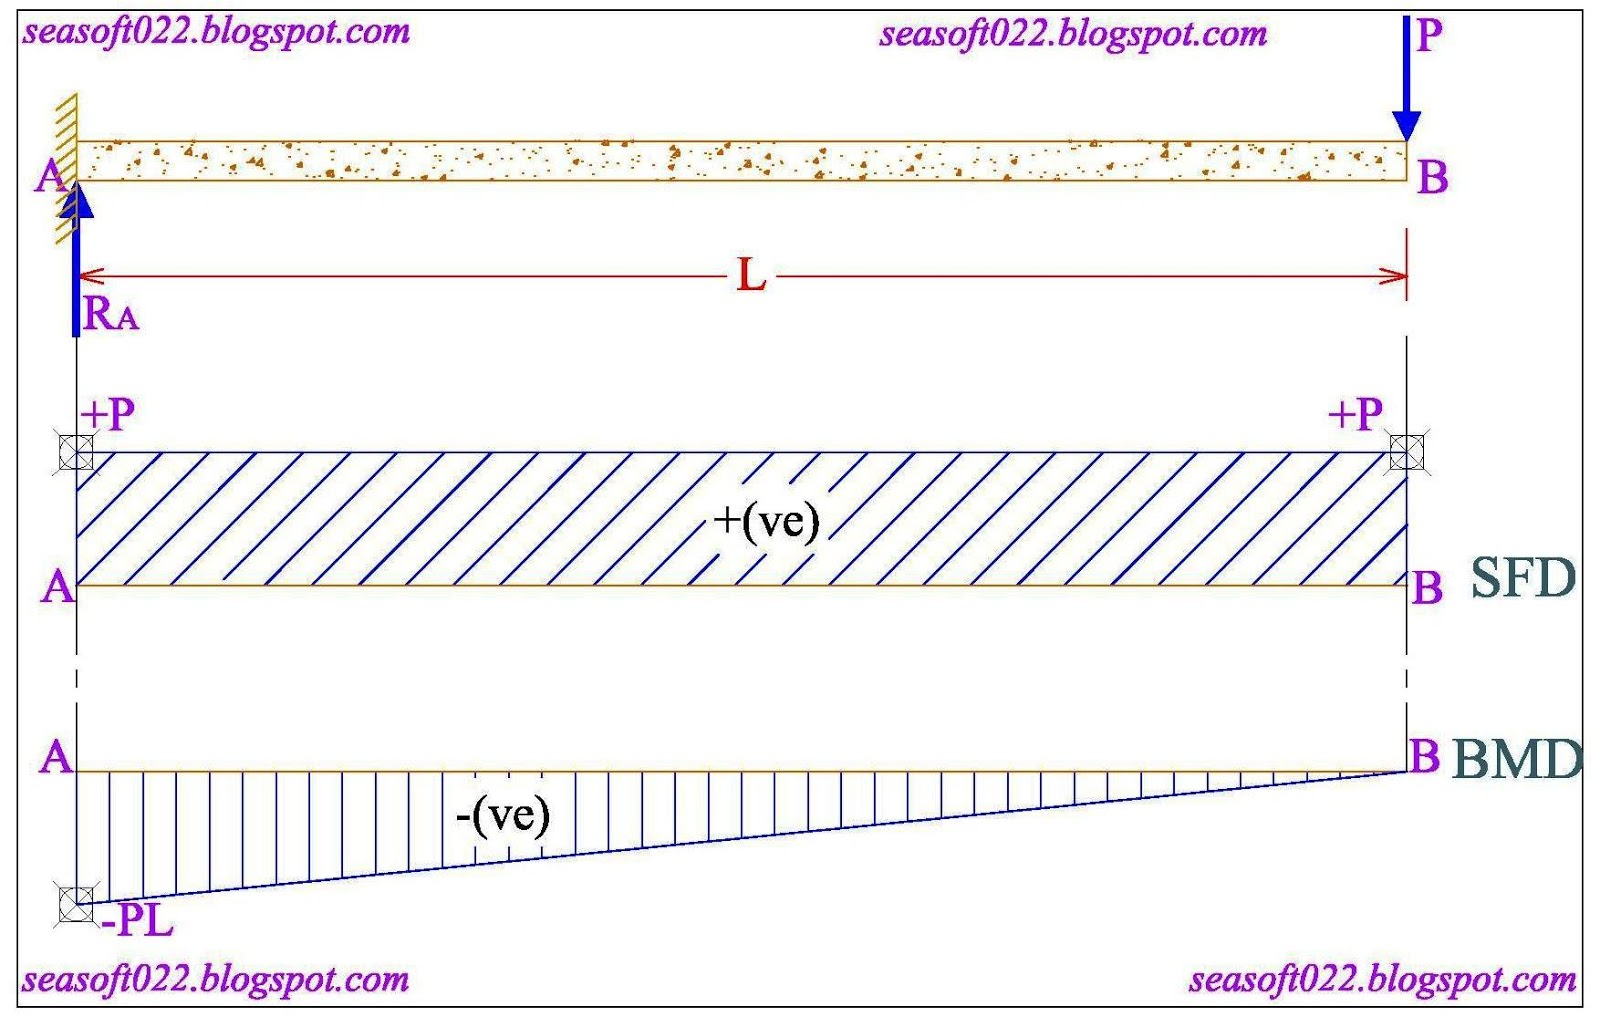 Sea Soft And Design Consultants Shear Force Bending Moment Free Body Diagram Sfd Bmd D Let Ab Is A Beam Of Length L Point Pin Support B Roller Udl Load W Acts Over The Total Then